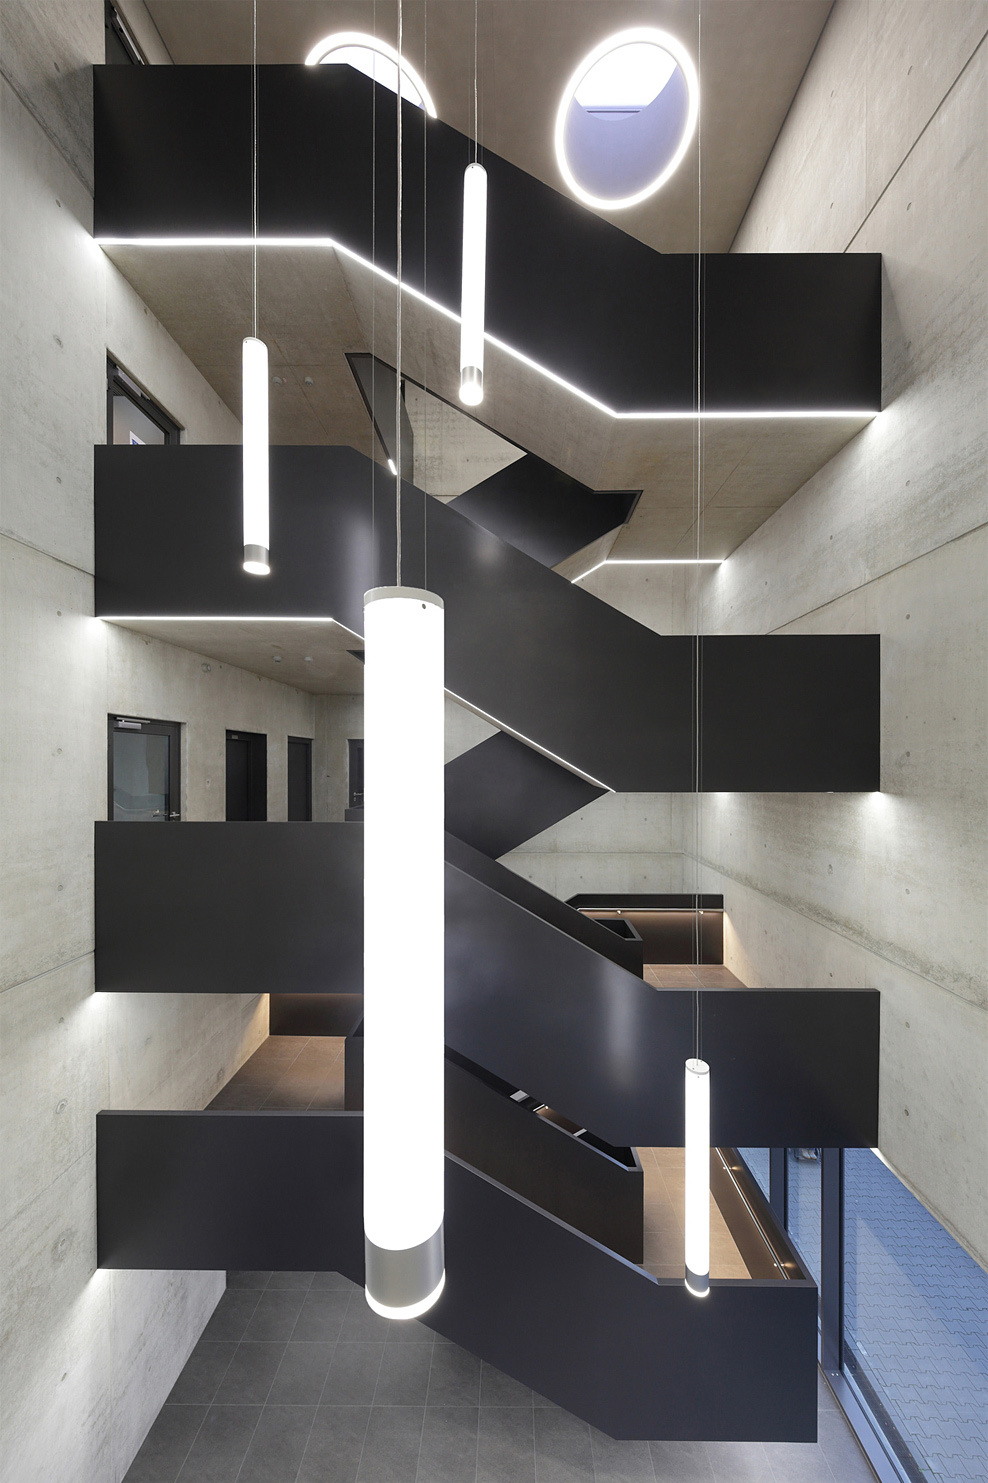 Ten top images on archinect 39 s interiors pinterest board for Interior design bielefeld